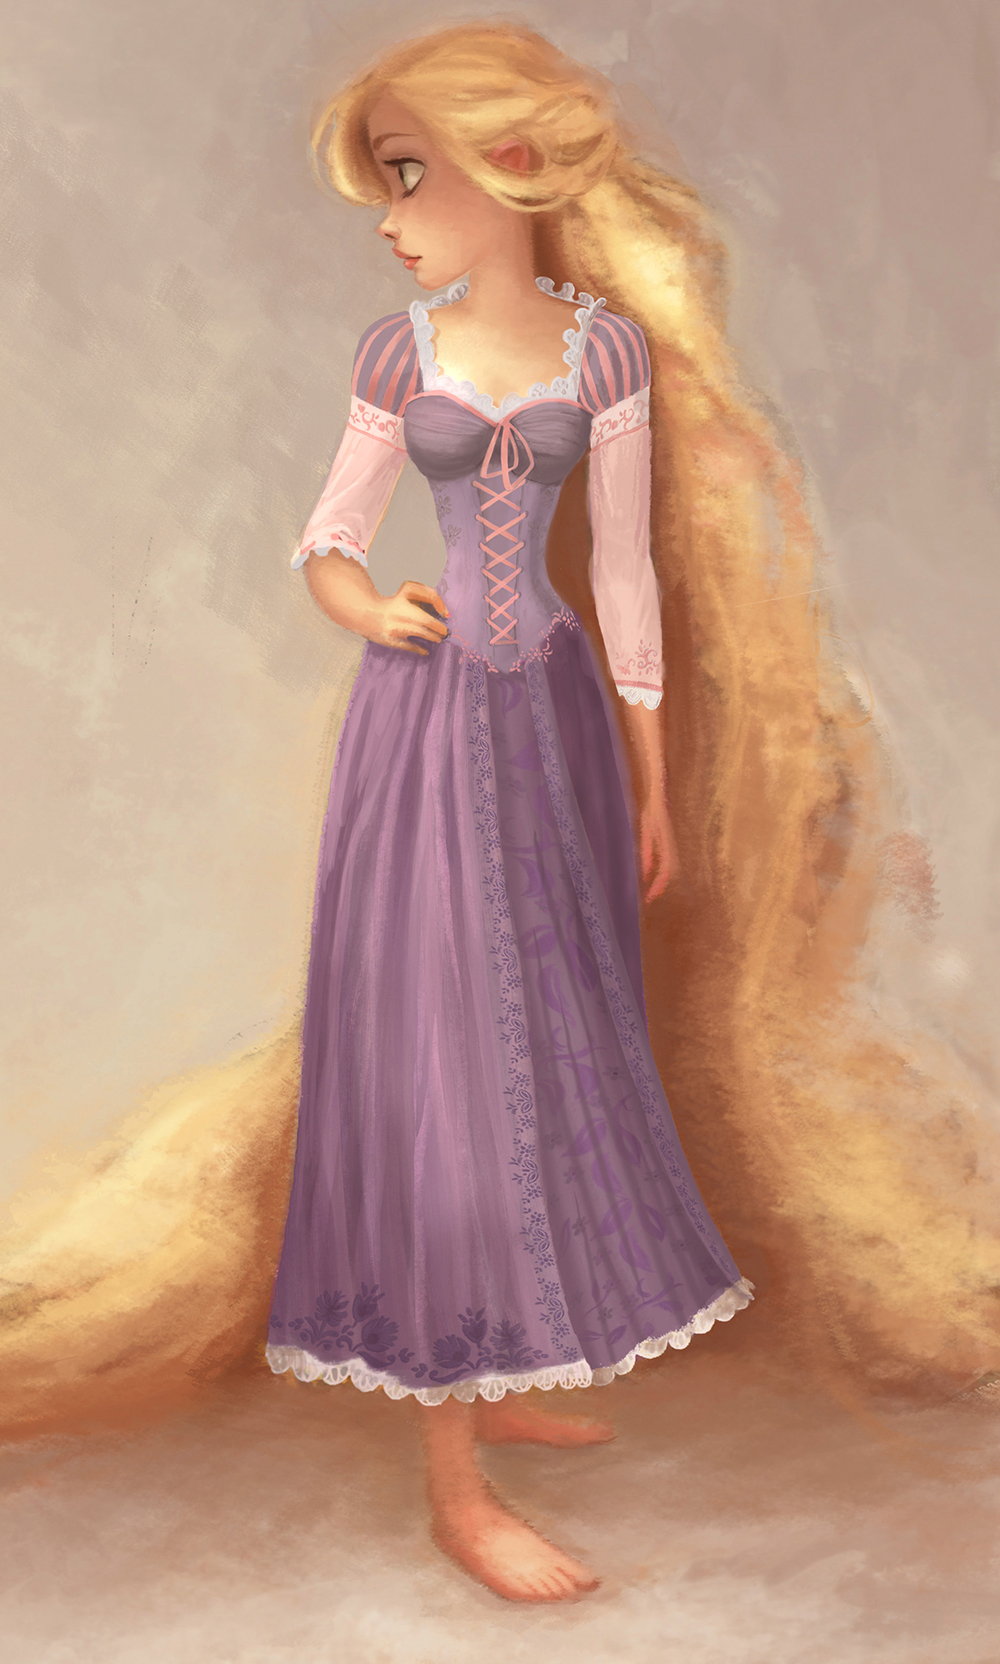 Rapunzel-Concept-Art-from-Tangled